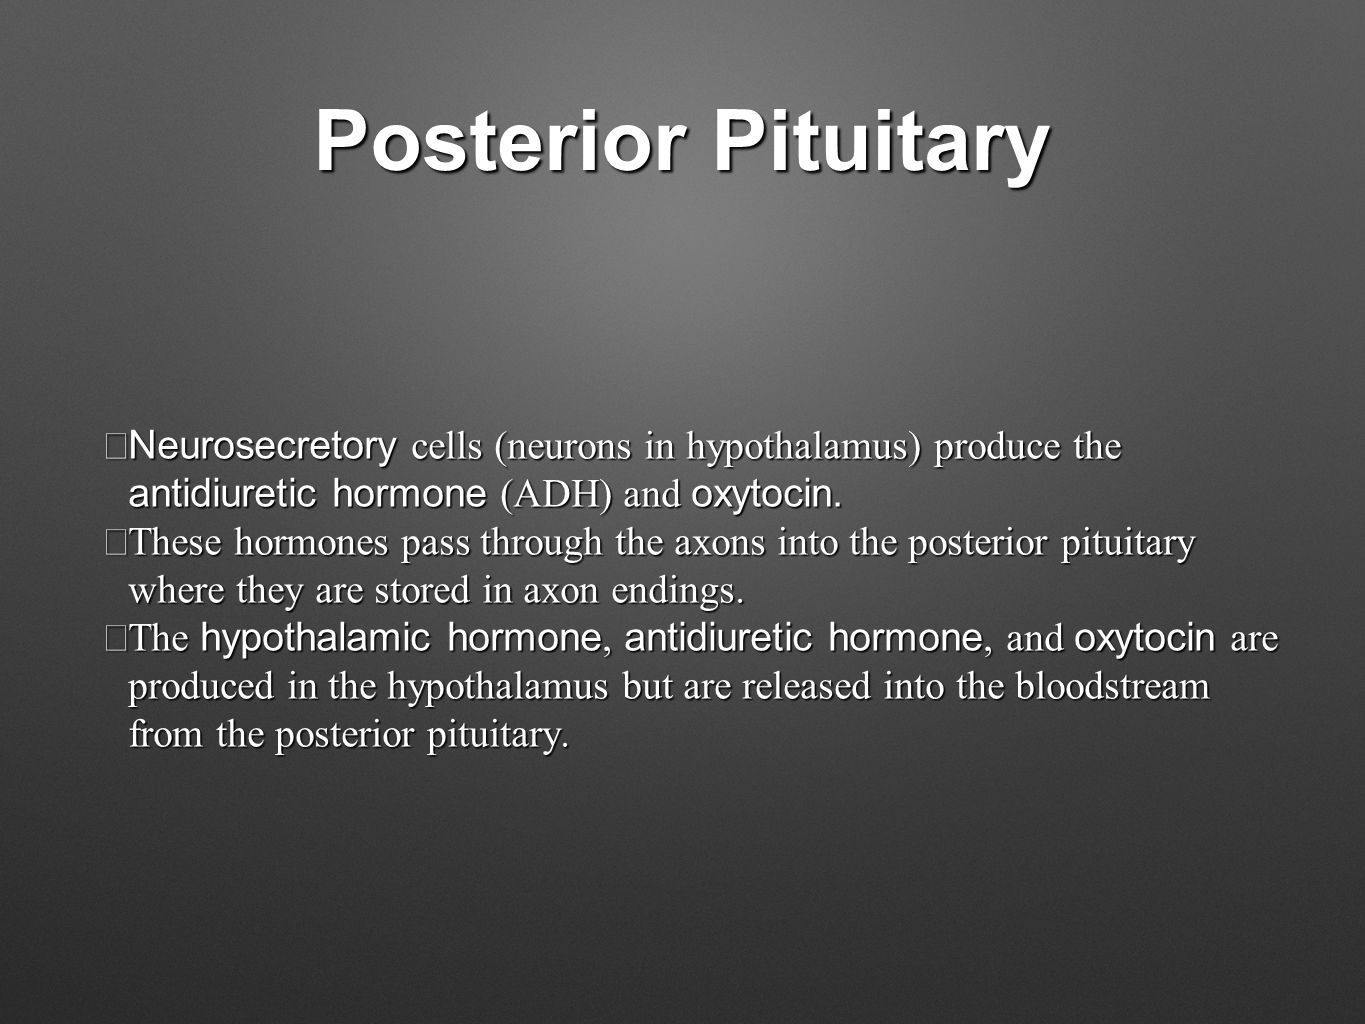 Posterior Pituitary Neurosecretory cells (neurons in hypothalamus) produce the antidiuretic hormone (ADH) and oxytocin.